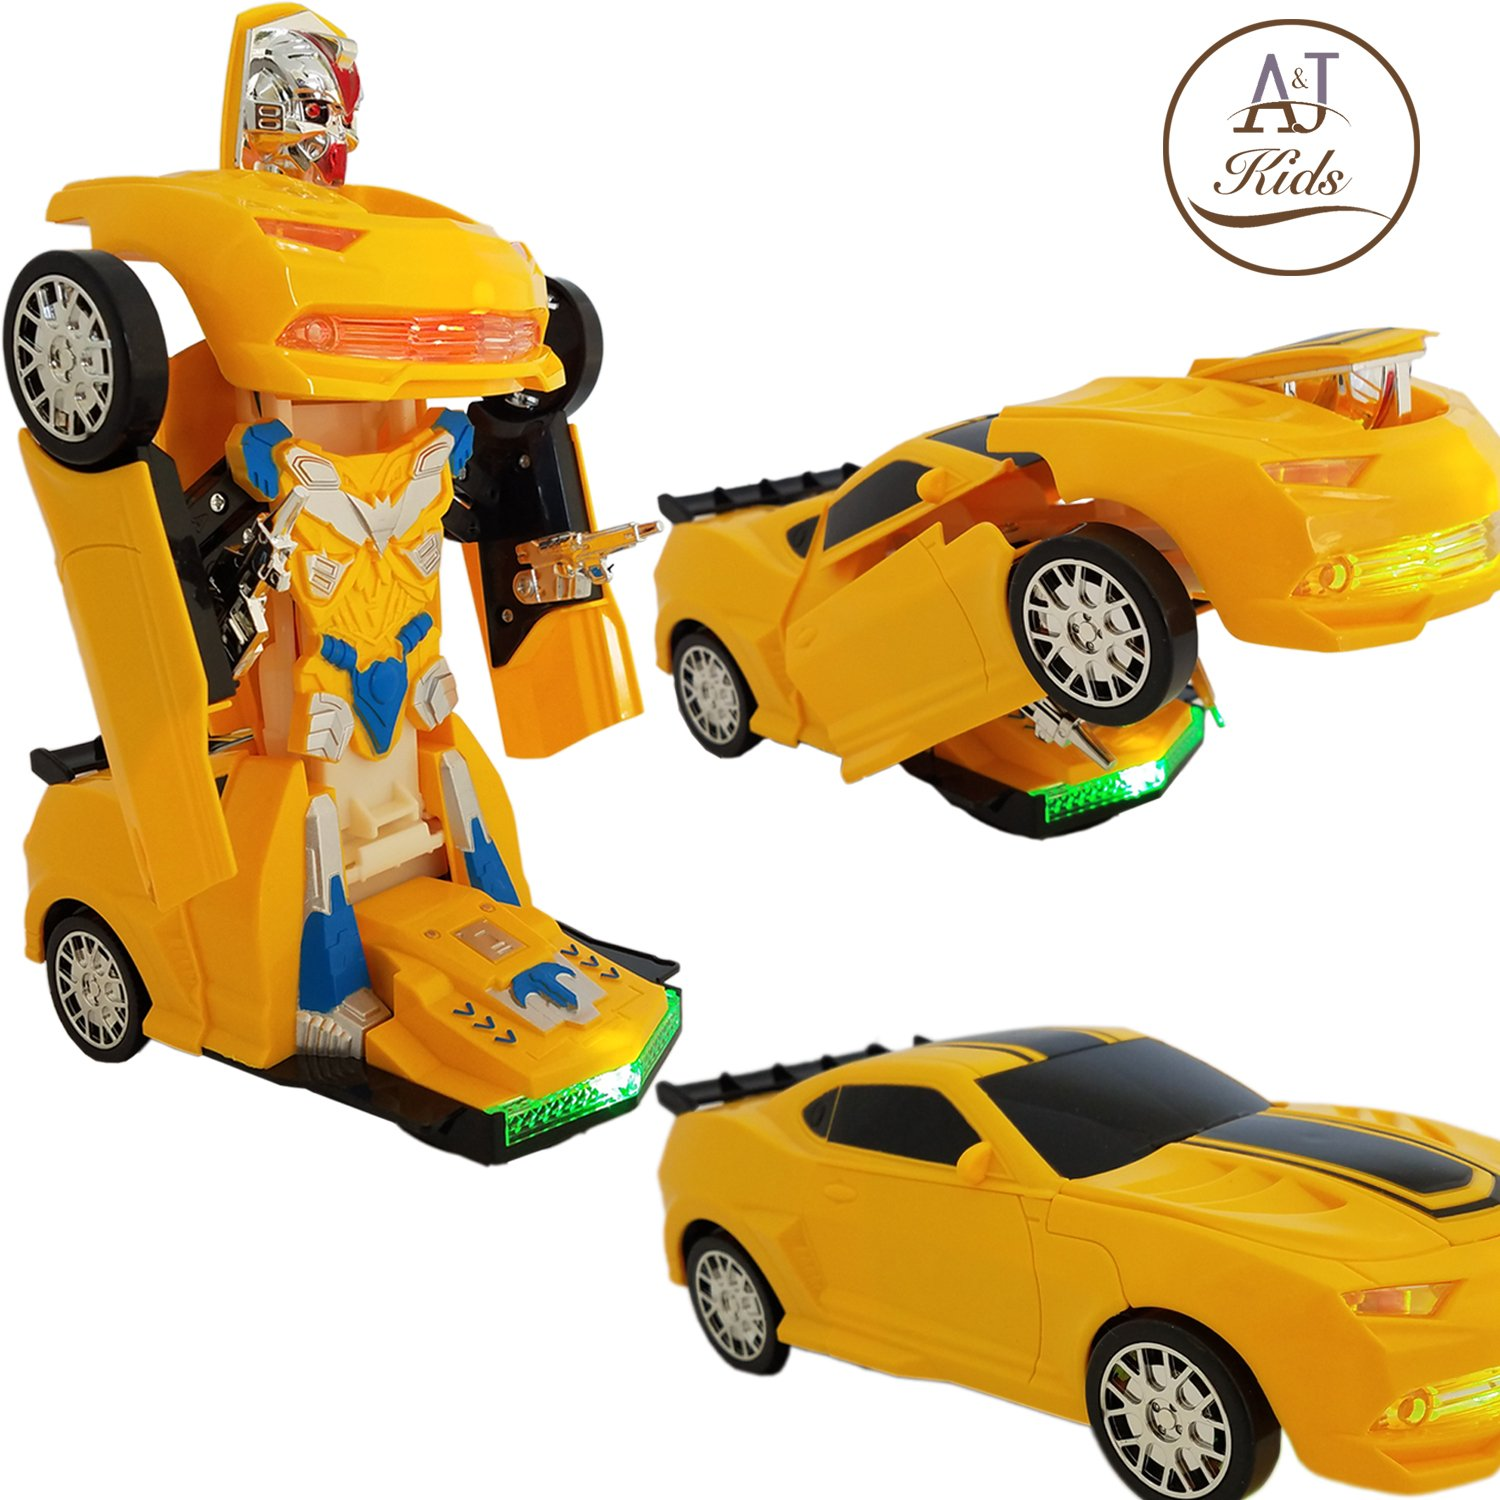 ANJ Kids Toys - Battery Operated Bump and Go Transforming Toys for Kids -Auto Transforming Auto Robots Action Figure and Toy Vehicles - Realistic Engine Sounds & Beautiful Flash Lights